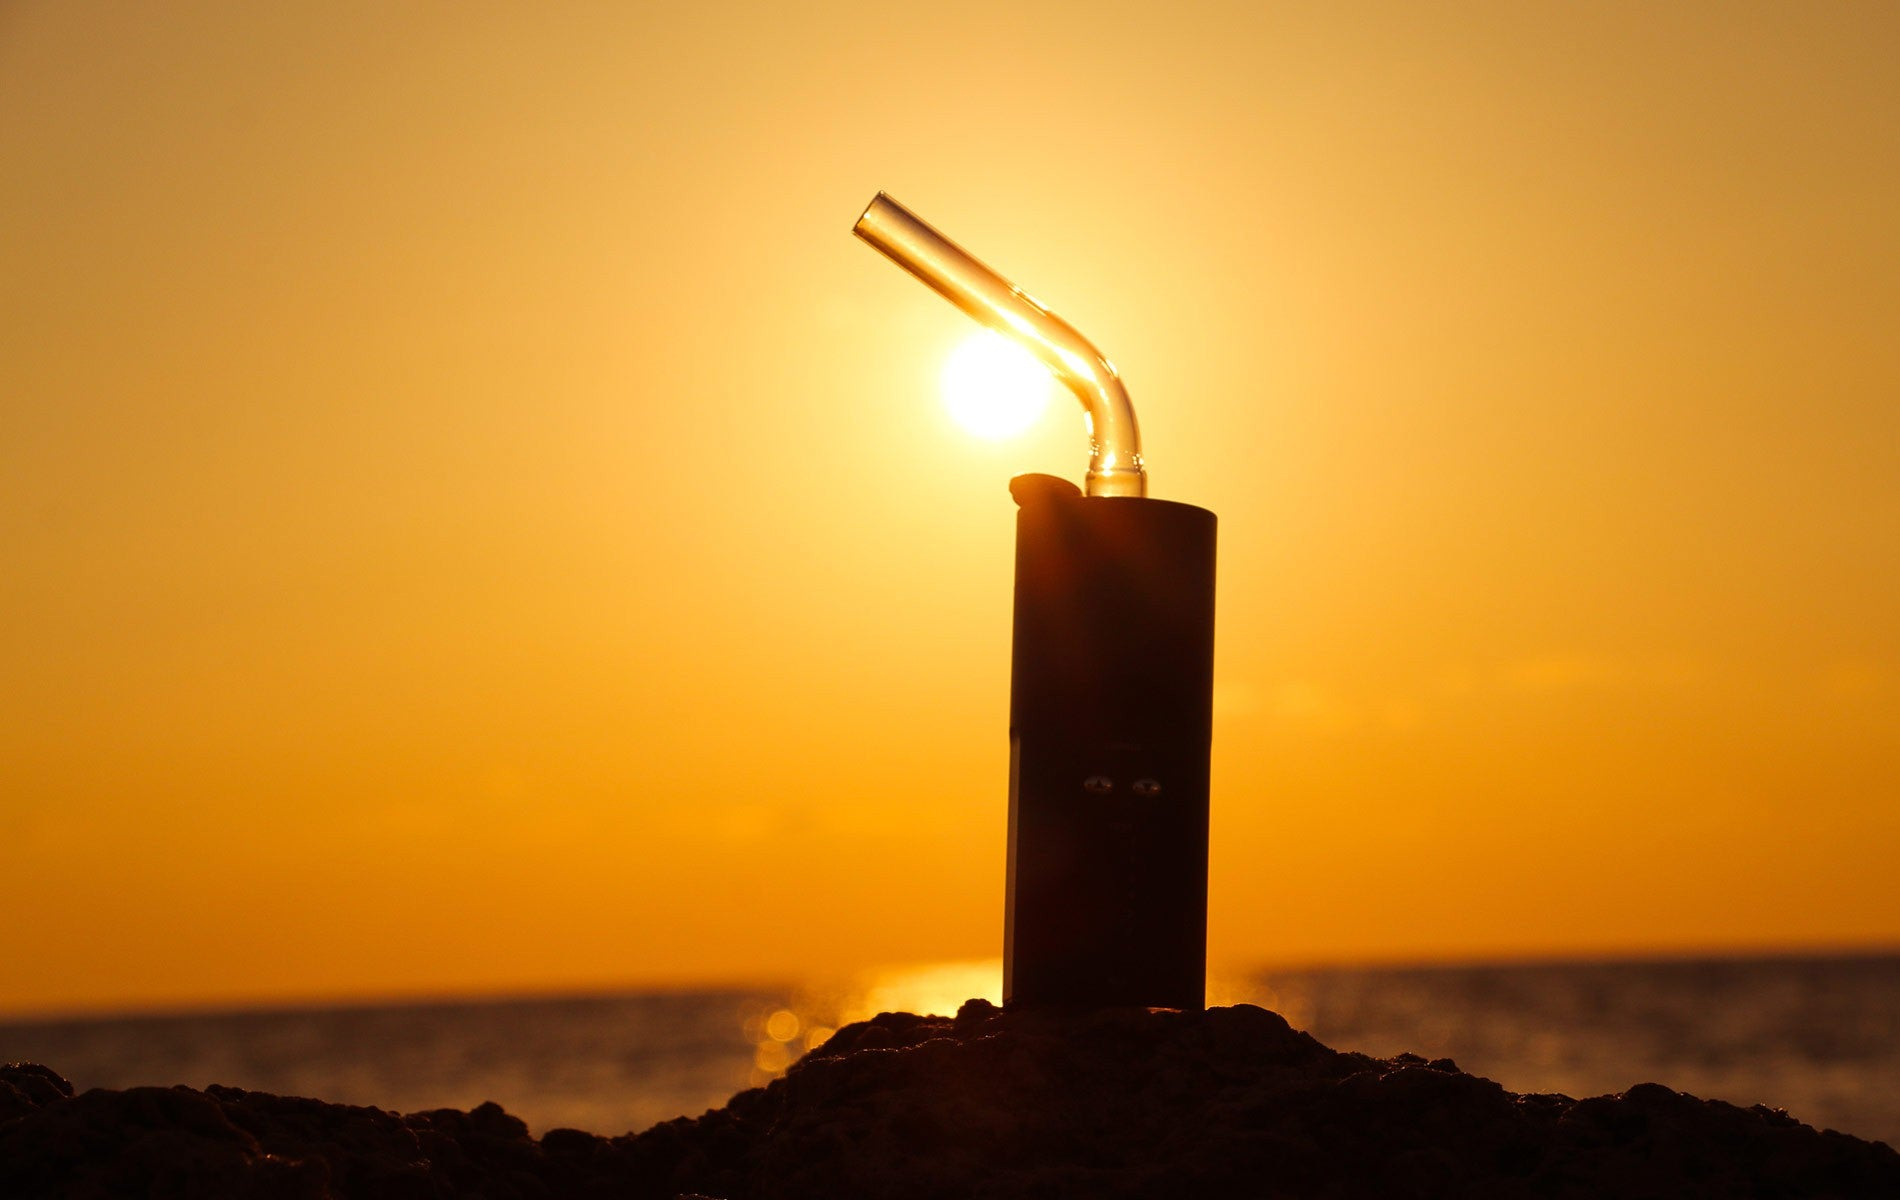 Featured Wallpaper Download: Sunrise with Arizer Solo